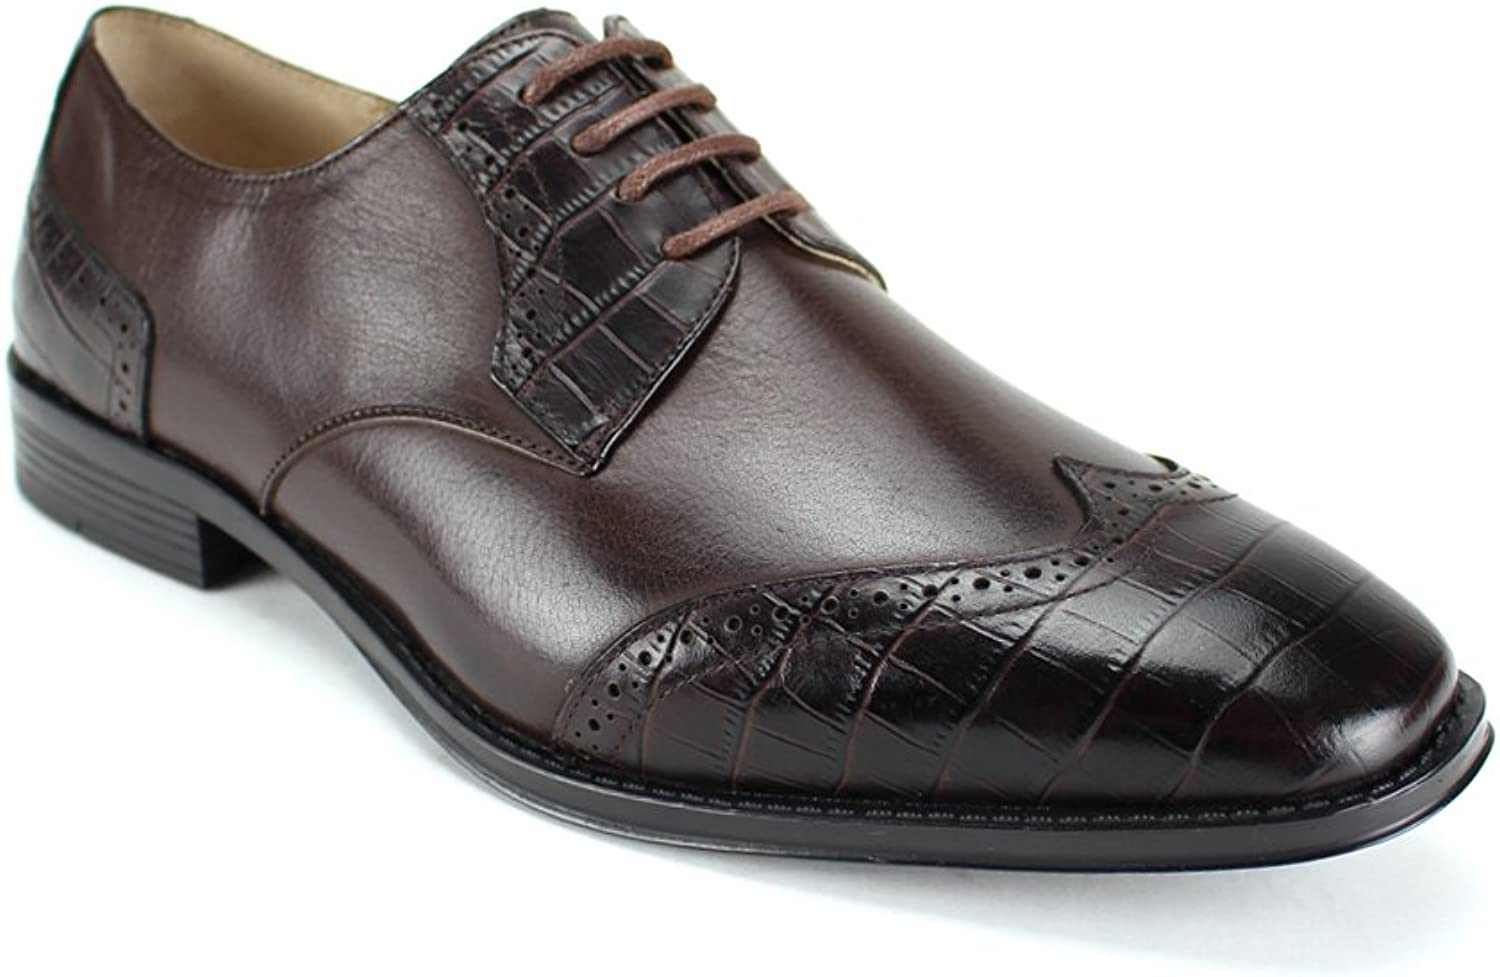 Giorgio Venturi 2533W Mens Leather Dress shoes Wide Width E Width  Smooth and Embossed